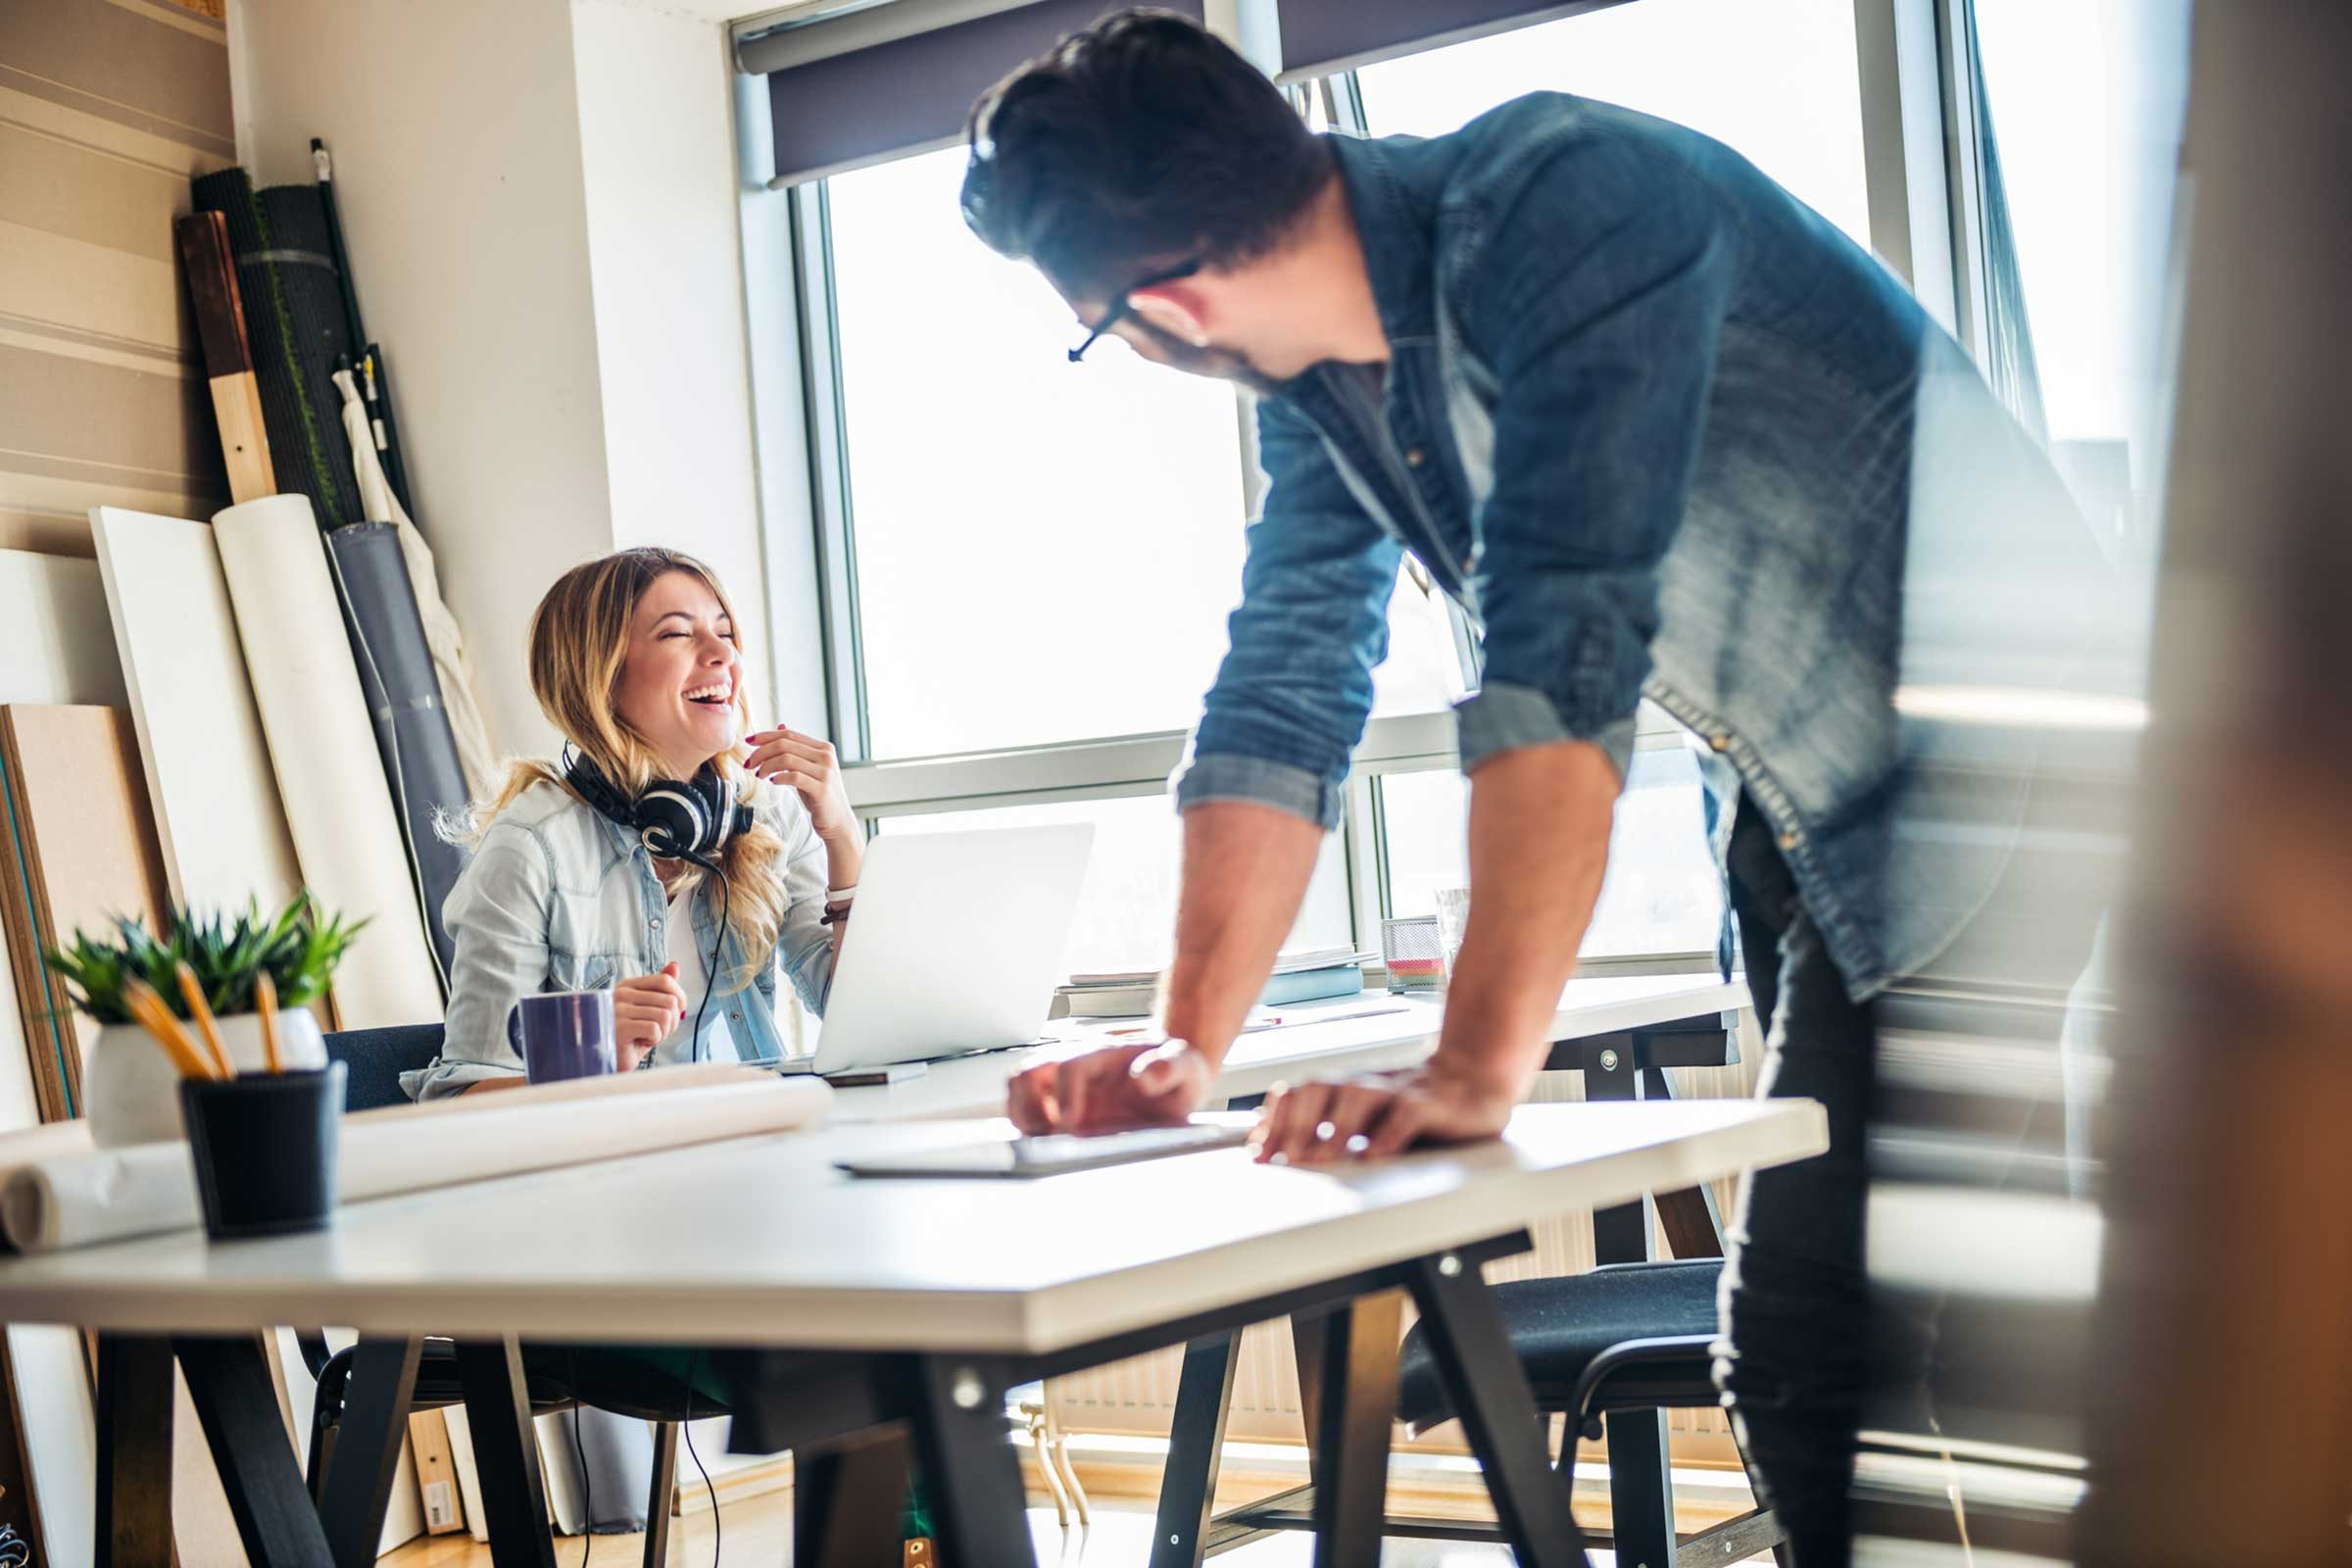 How to get a workplace spouse